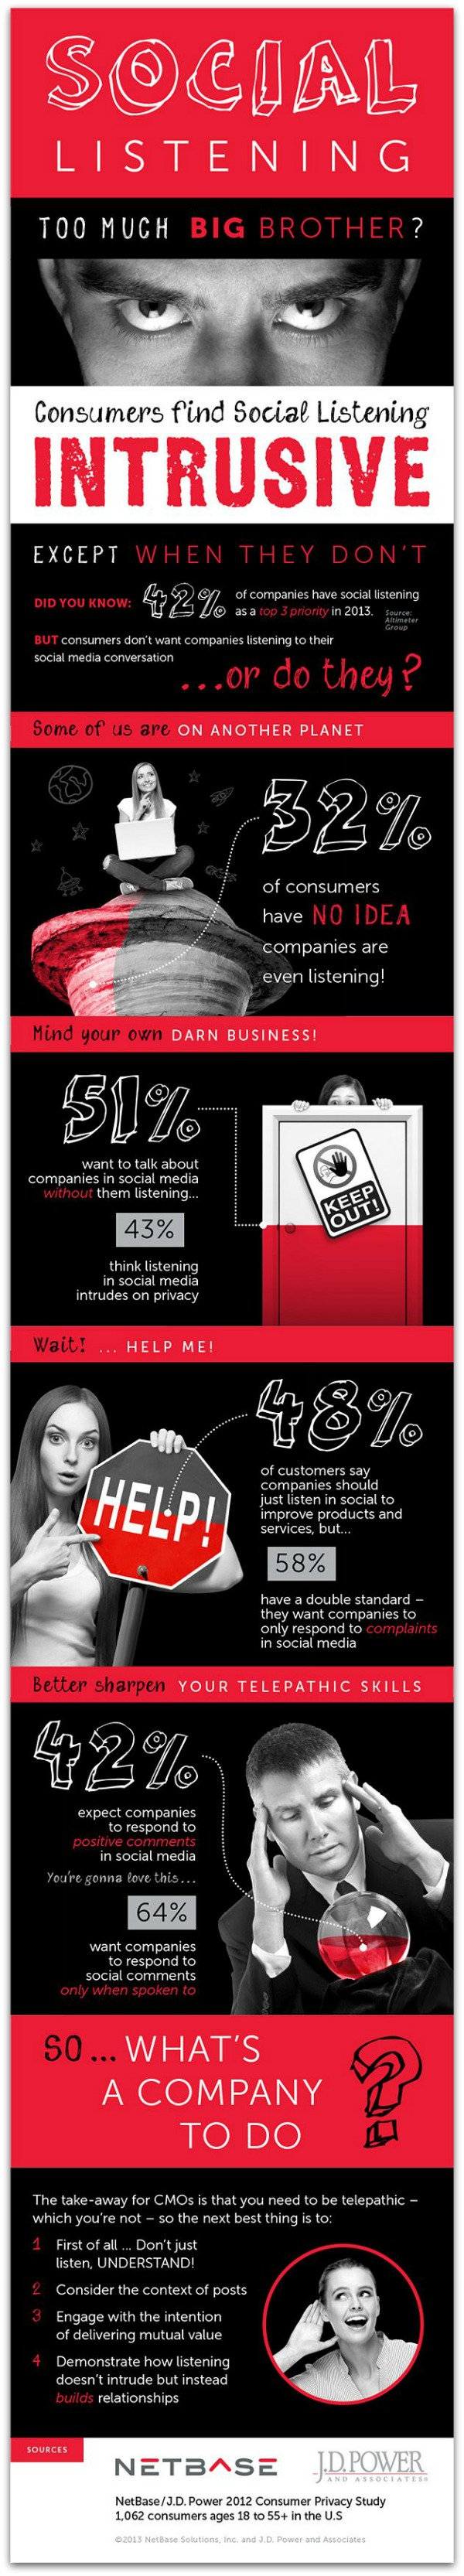 Social Listening By Brands-infographic